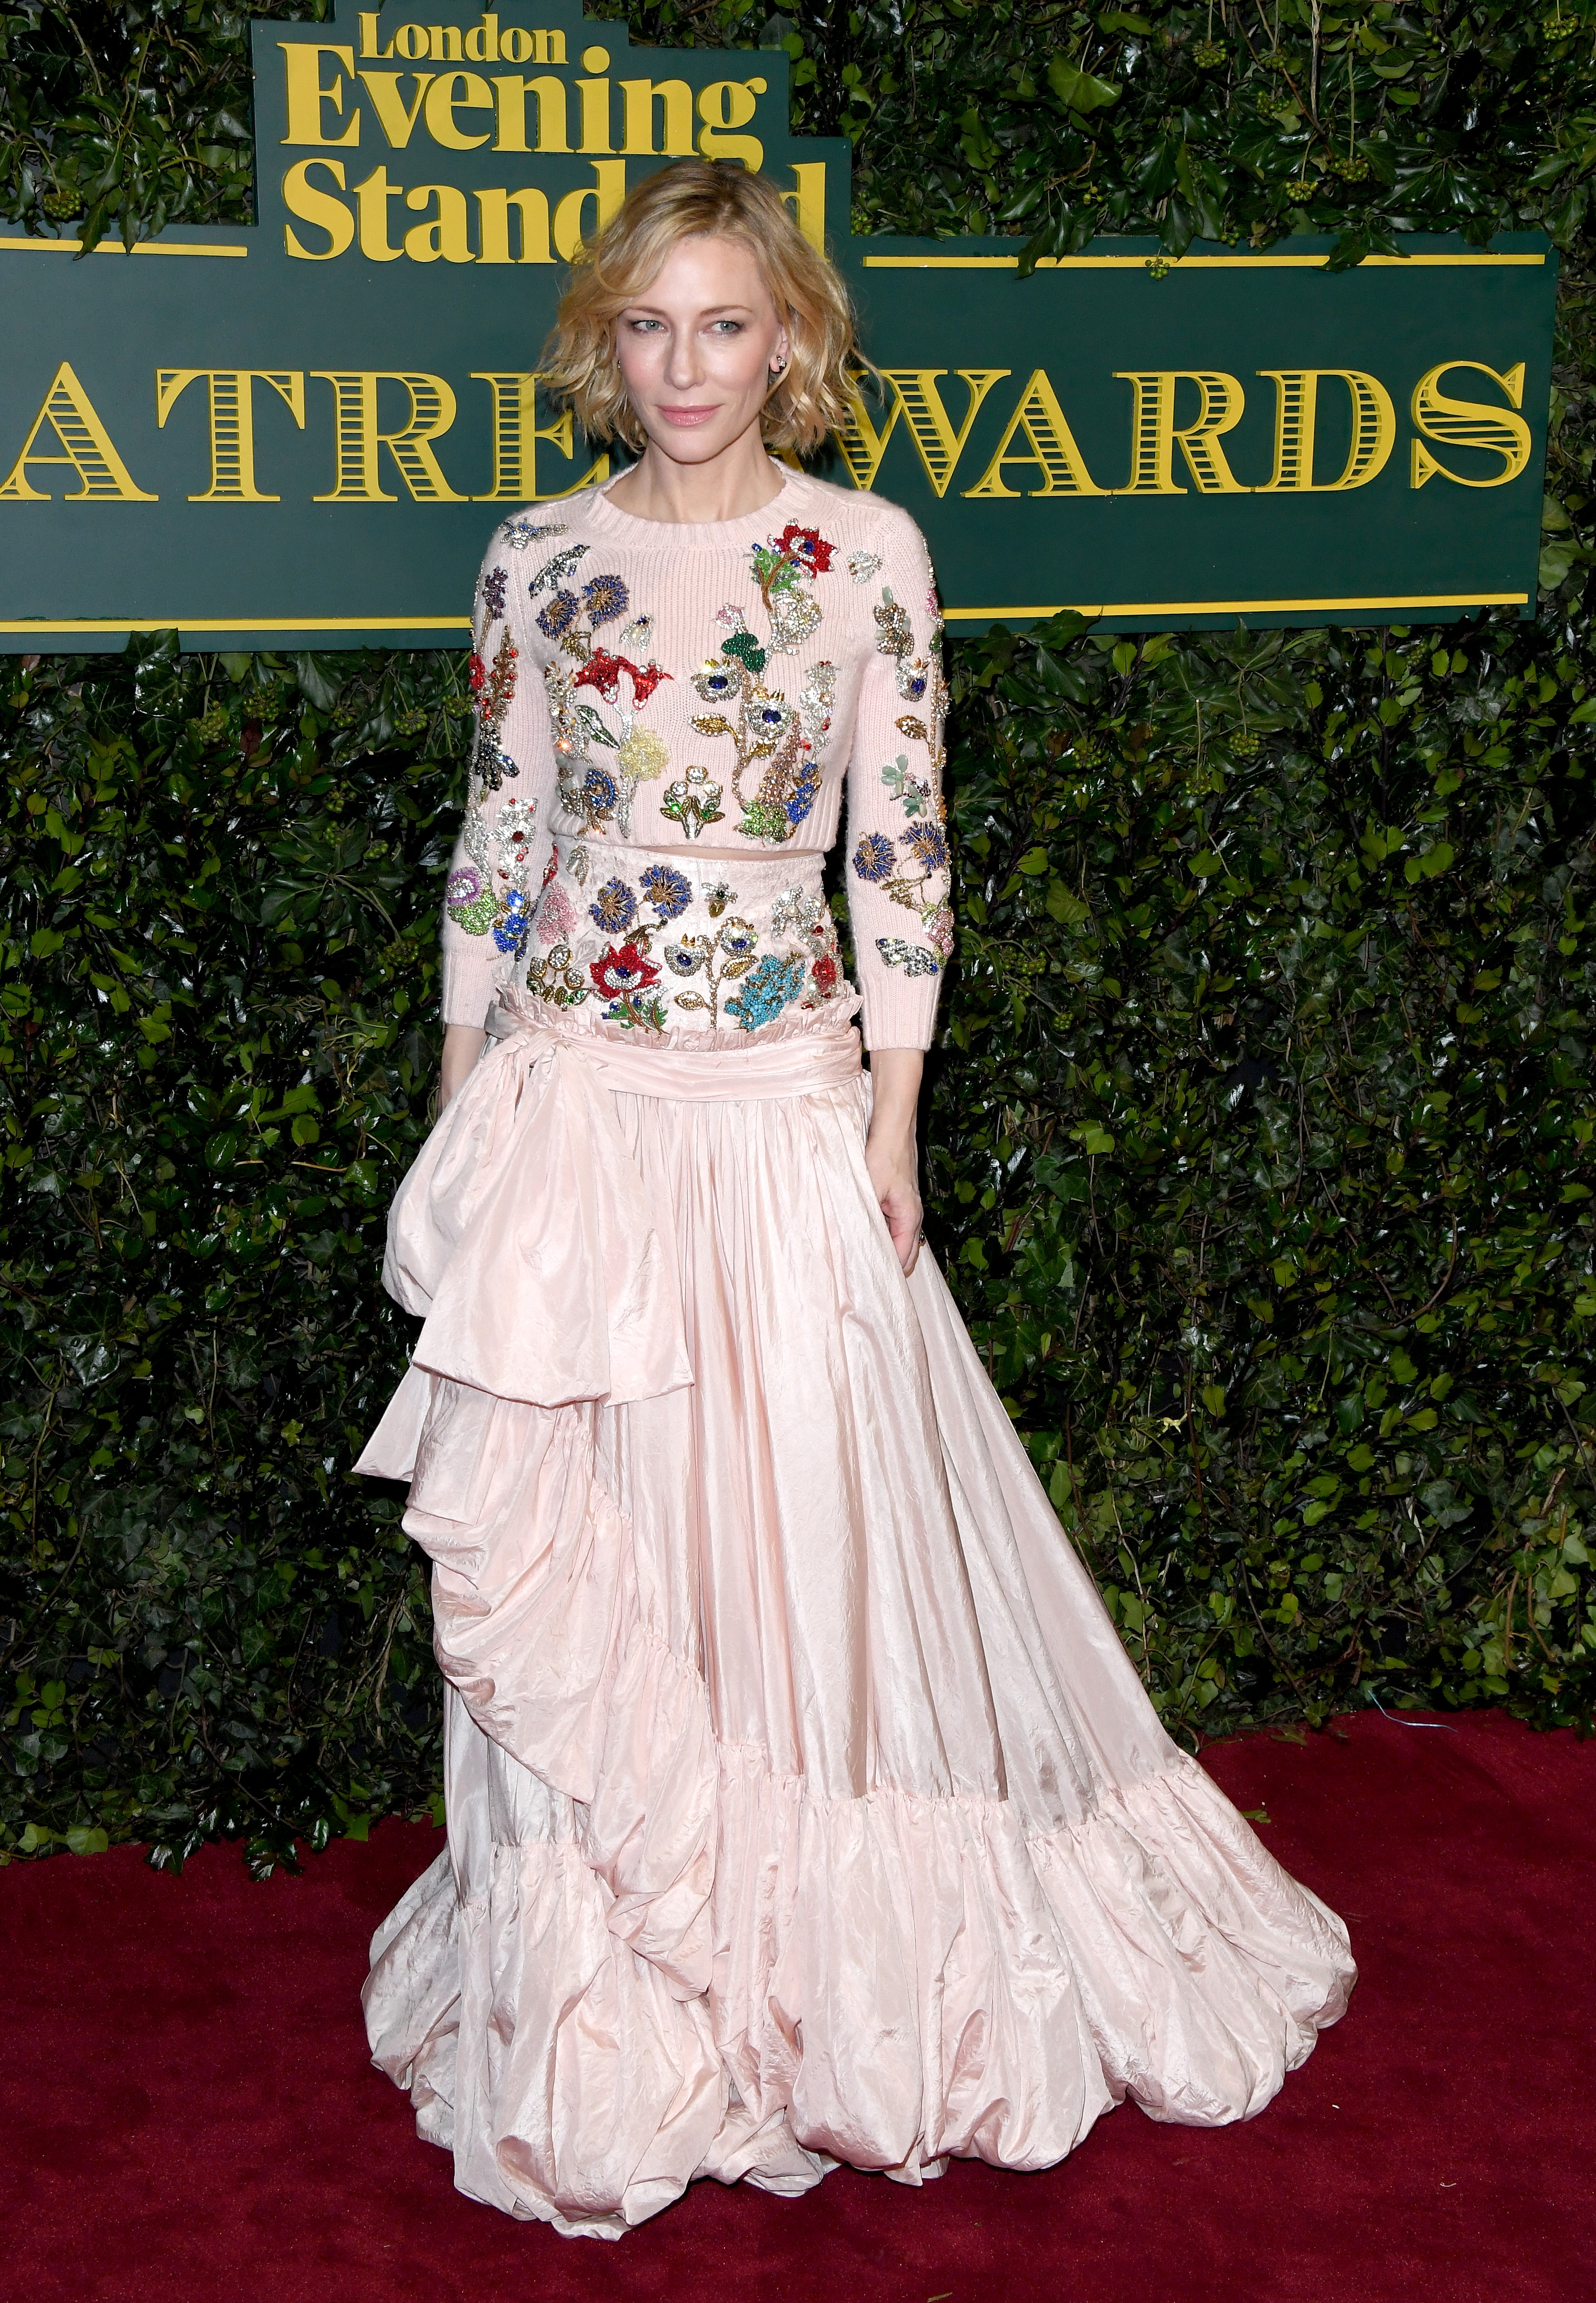 LONDON, ENGLAND - DECEMBER 03:  Cate Blanchett attends the London Evening Standard Theatre Awards at the Theatre Royal on December 3, 2017 in London, England.  (Photo by Stuart C. Wilson/Getty Images)